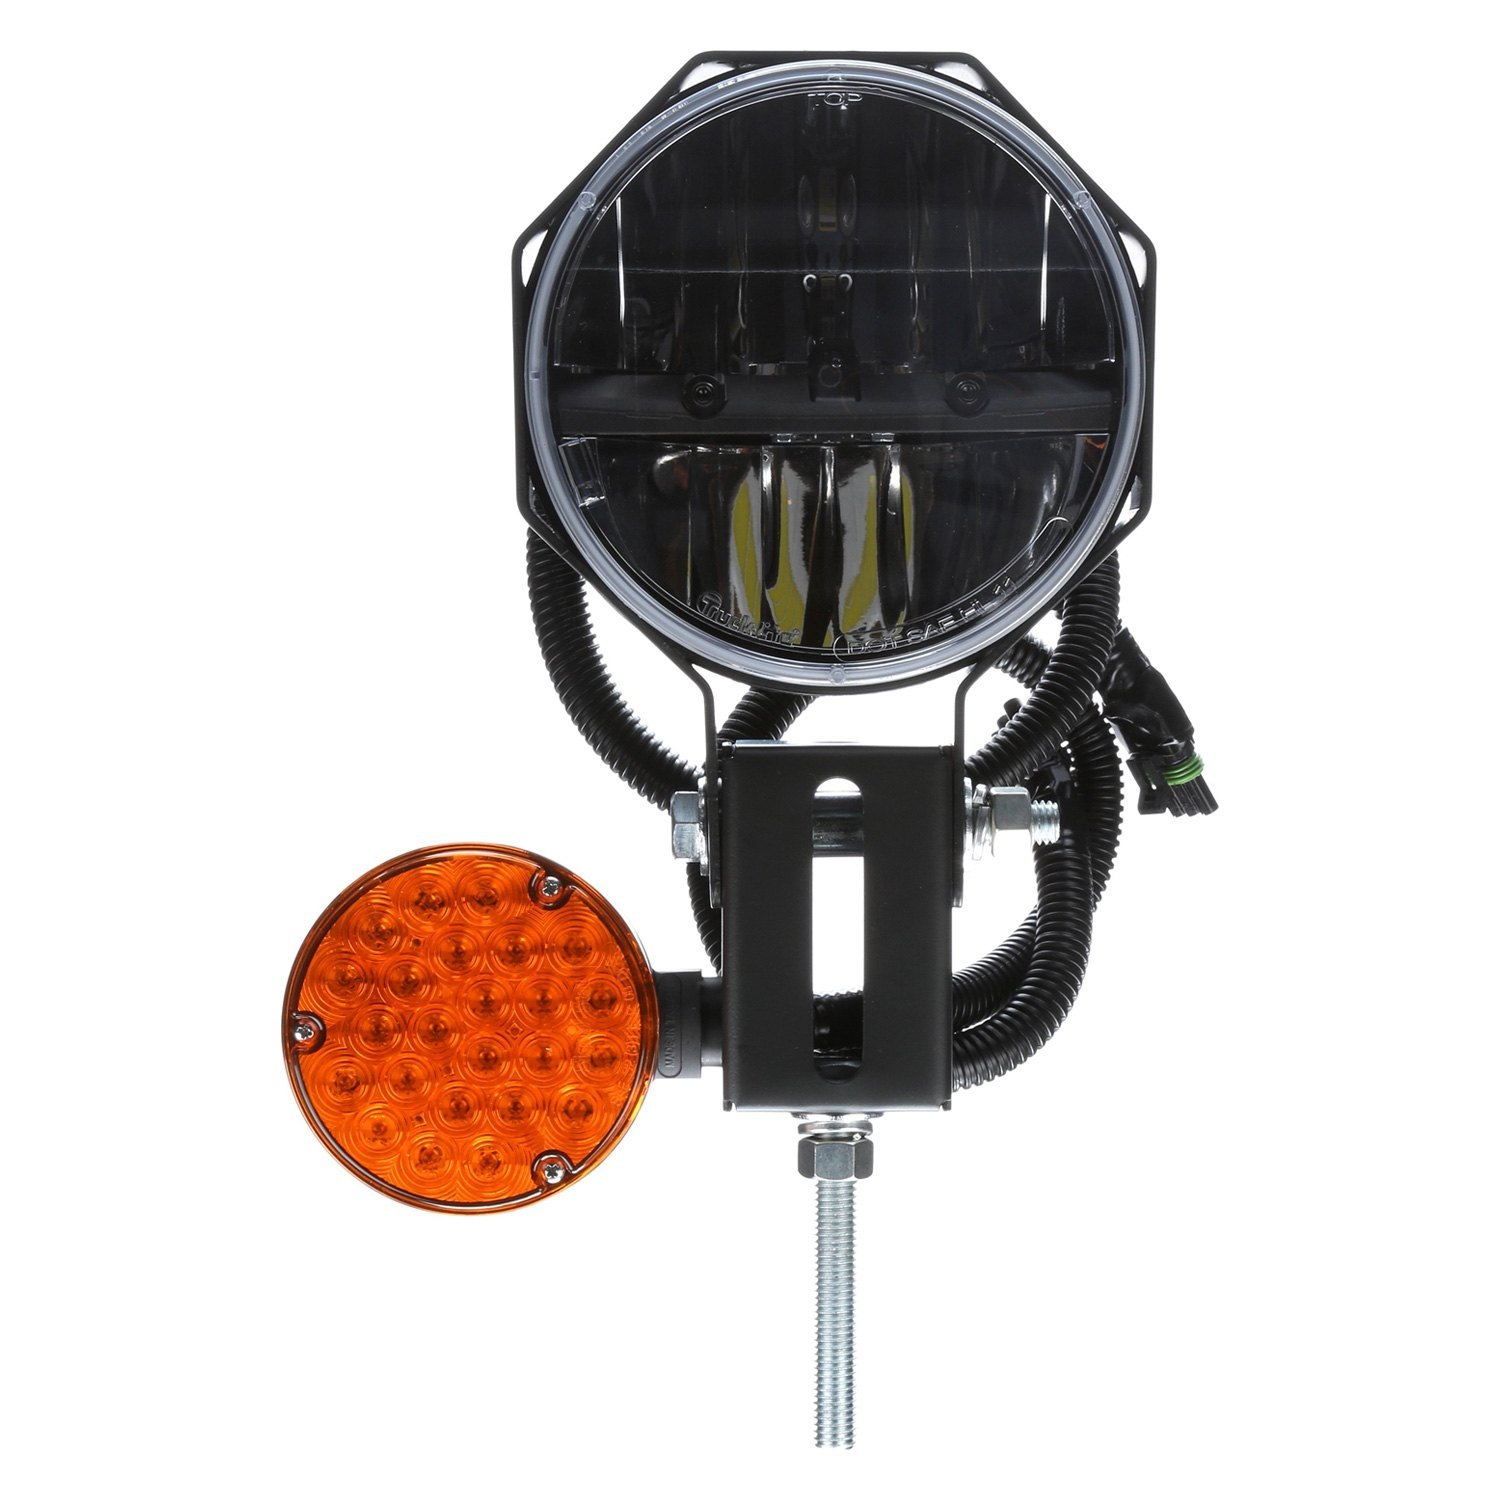 Snow Plow Prices >> Truck-Lite® 80878 - Round Passenger Side Snow Plow Light, 23 LED